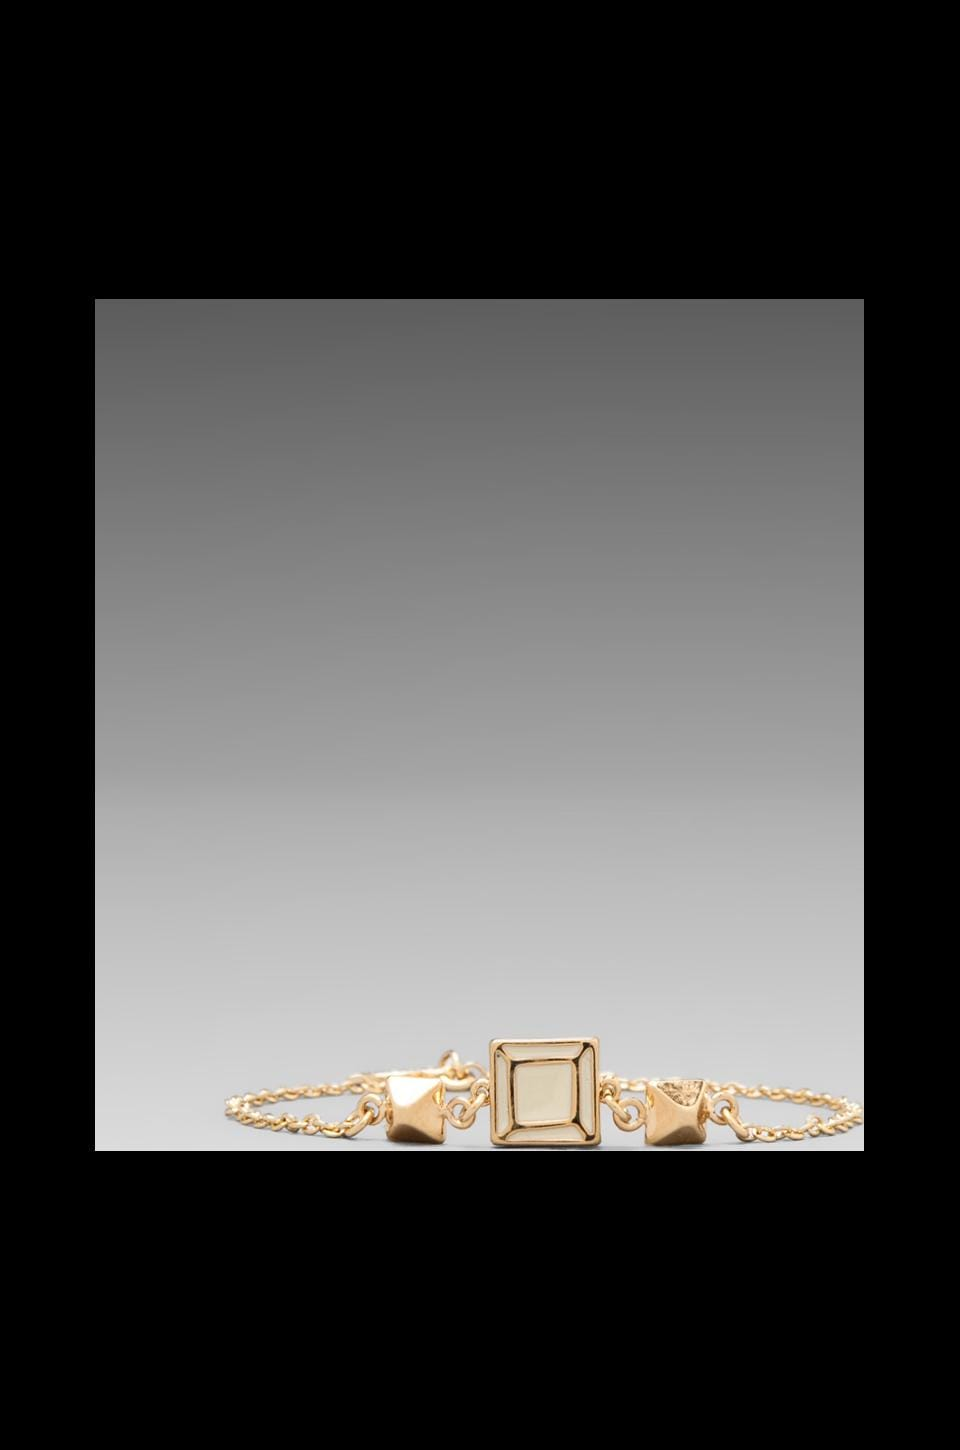 Marc by Marc Jacobs Gem Slices Tiny Gem Bracelet in Cream/ Oro